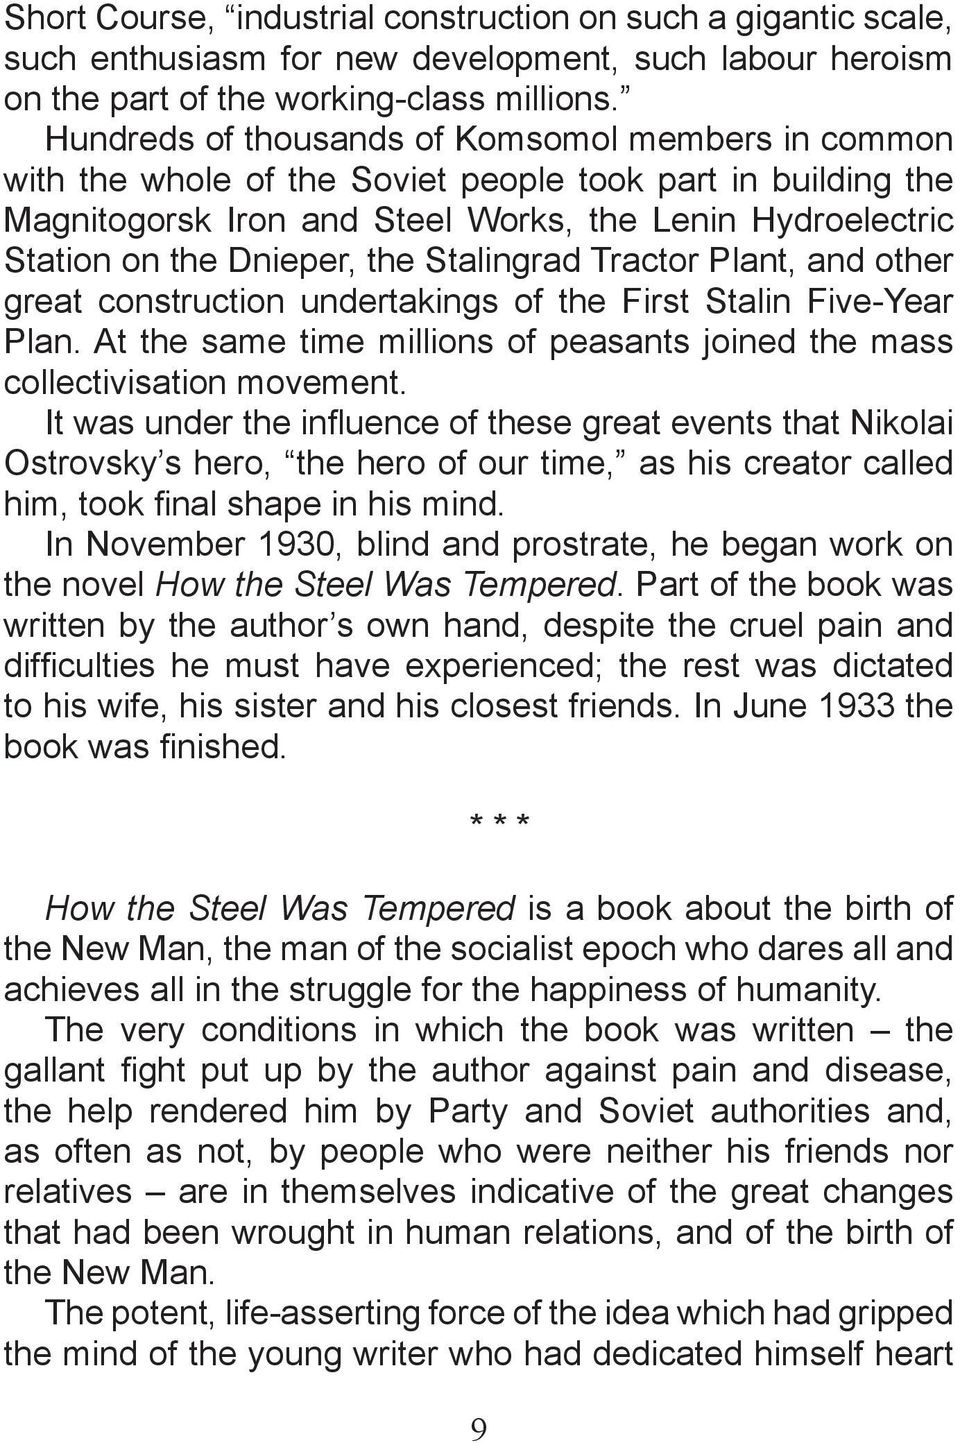 the Stalingrad Tractor Plant, and other great construction undertakings of the First Stalin Five-Year Plan. At the same time millions of peasants joined the mass collectivisation movement.